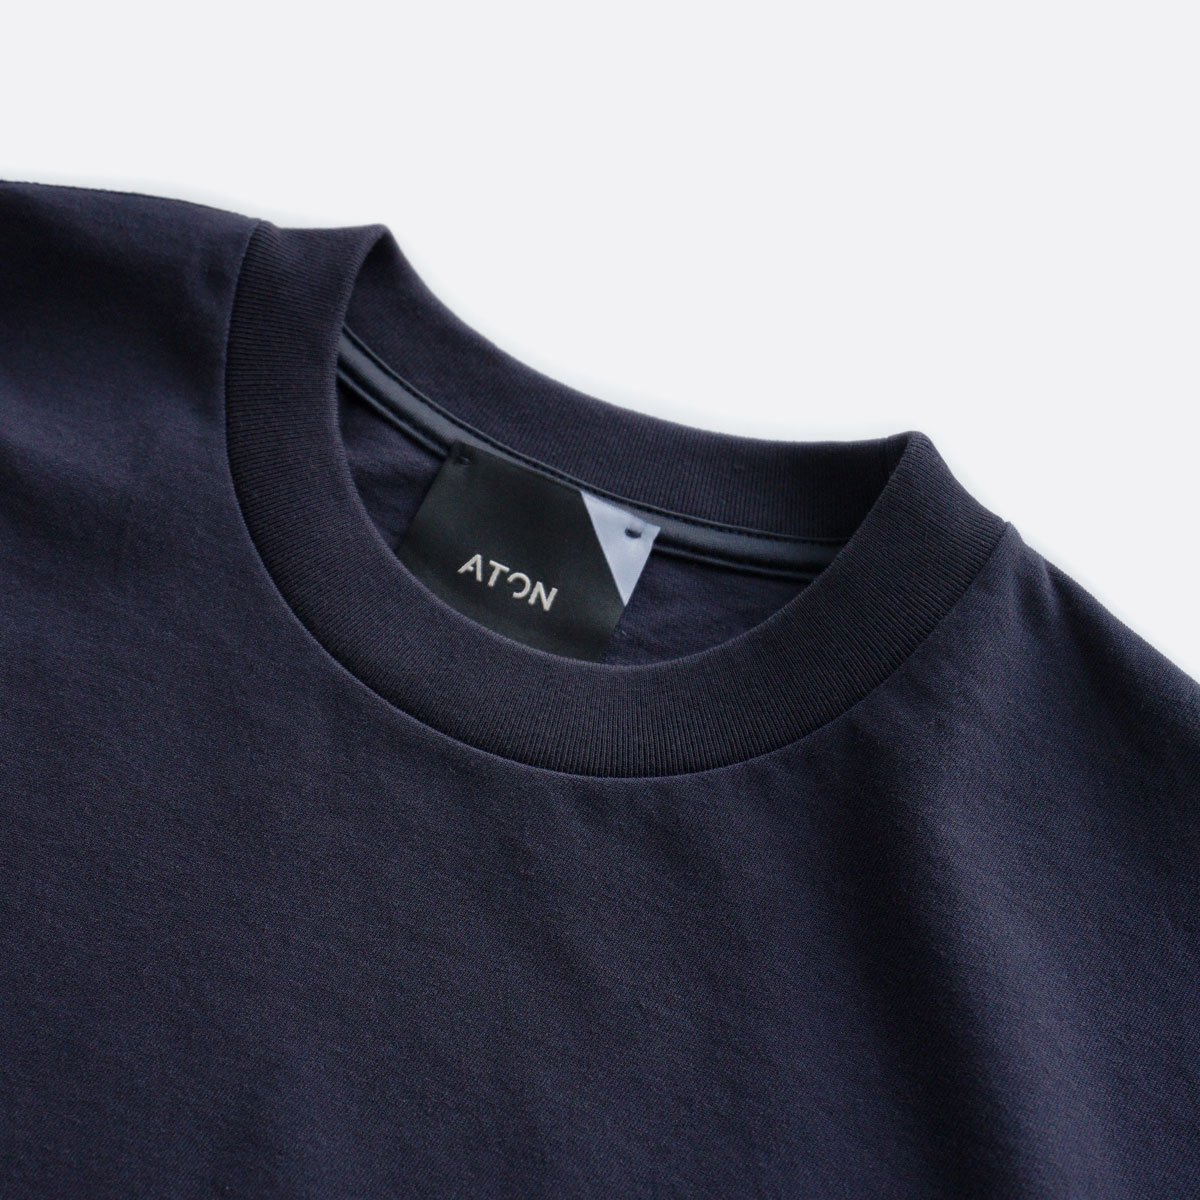 ATON FRESCA PLATE OVERSIZED T-SHIRT (NAVY)3